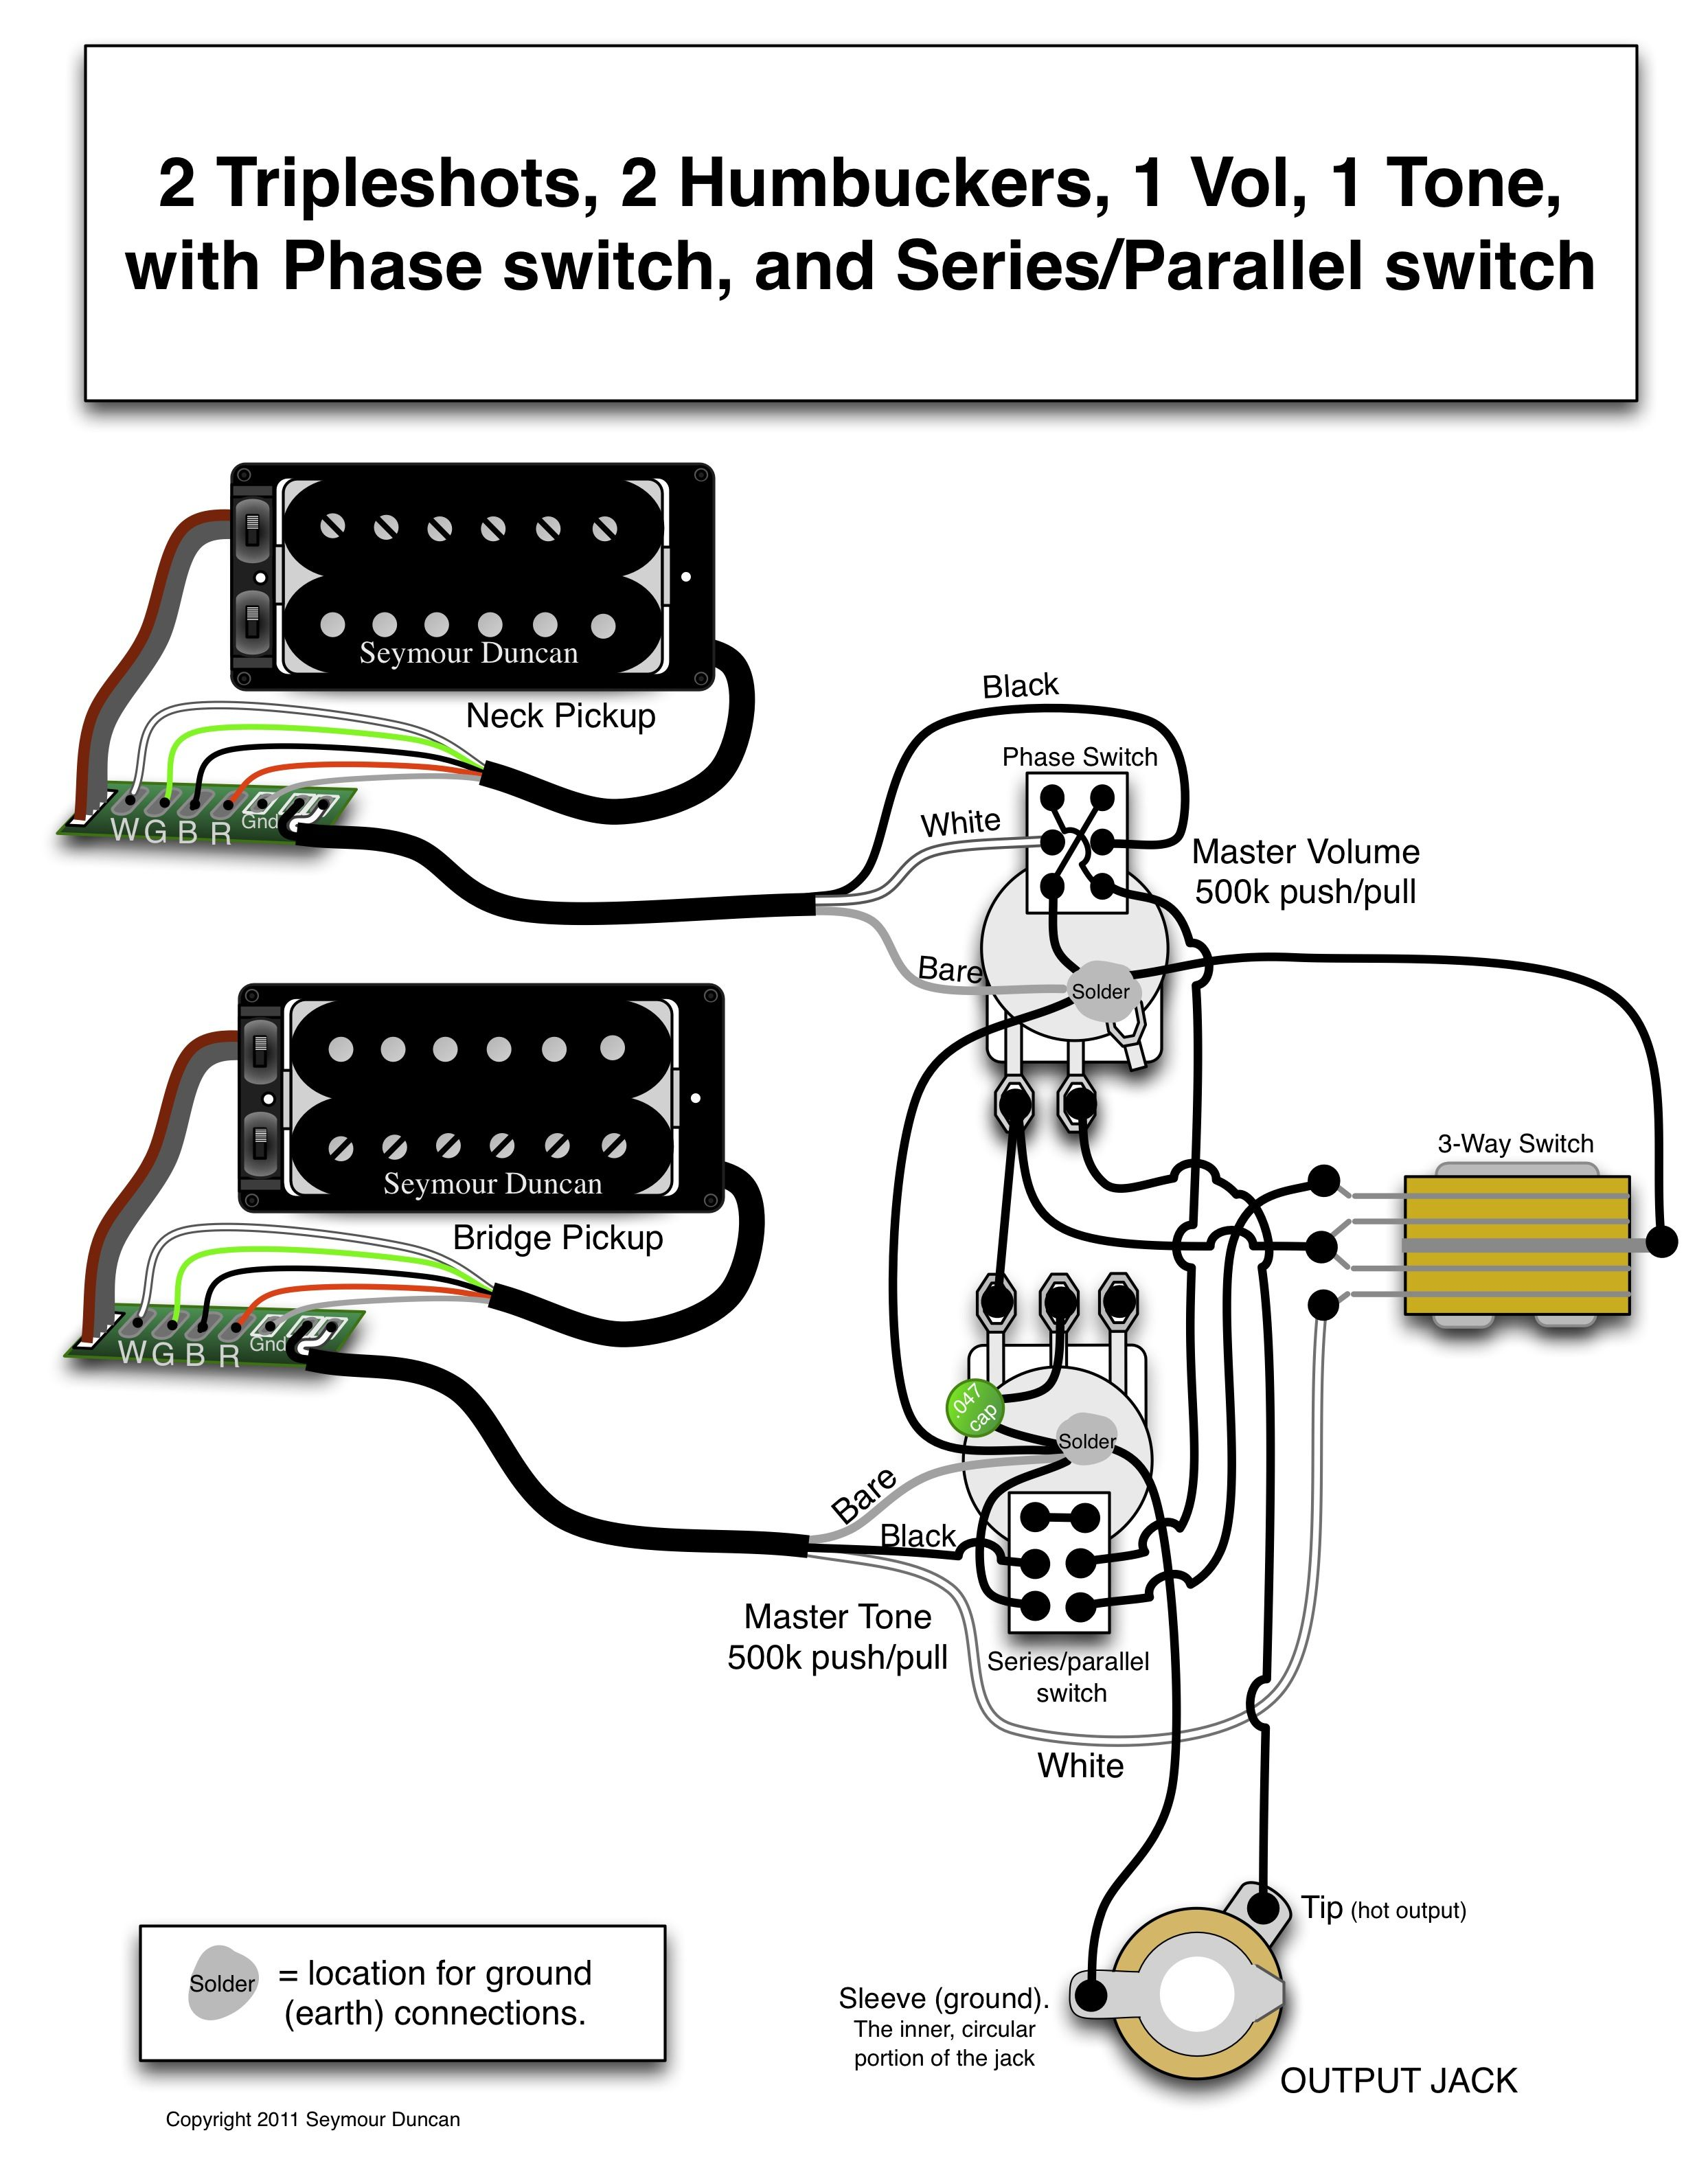 11e7a4ce932088841833425d14ebd2ea seymour duncan wiring diagram 2 triple shots, 2 humbuckers, 1 Guitar Wiring Diagrams 2 Pickups at bayanpartner.co